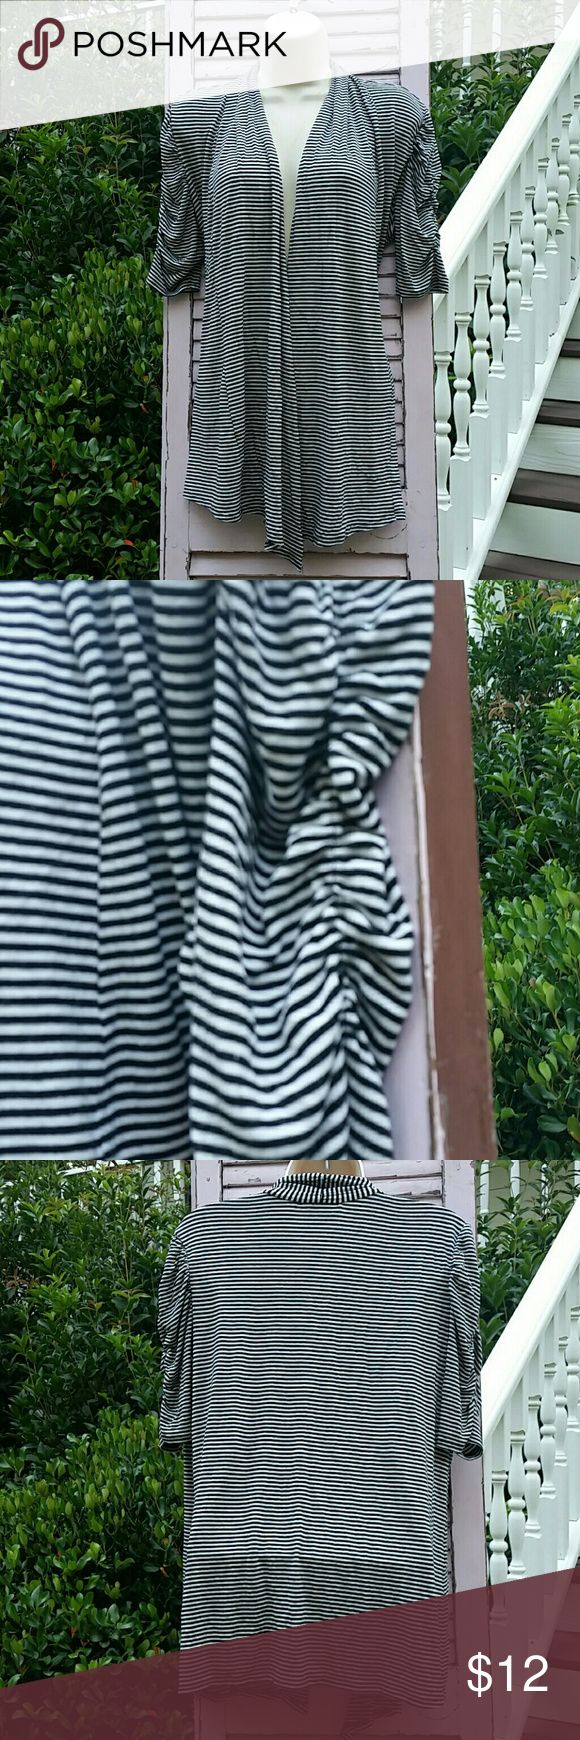 WHITE HOUSE BLACK MARKET Shortsleeve Striped Top Just a great top to have around... toss in your bag for chilly restaurant, dress up a pair of jeans and so much more. White House Black Market Sweaters Shrugs & Ponchos